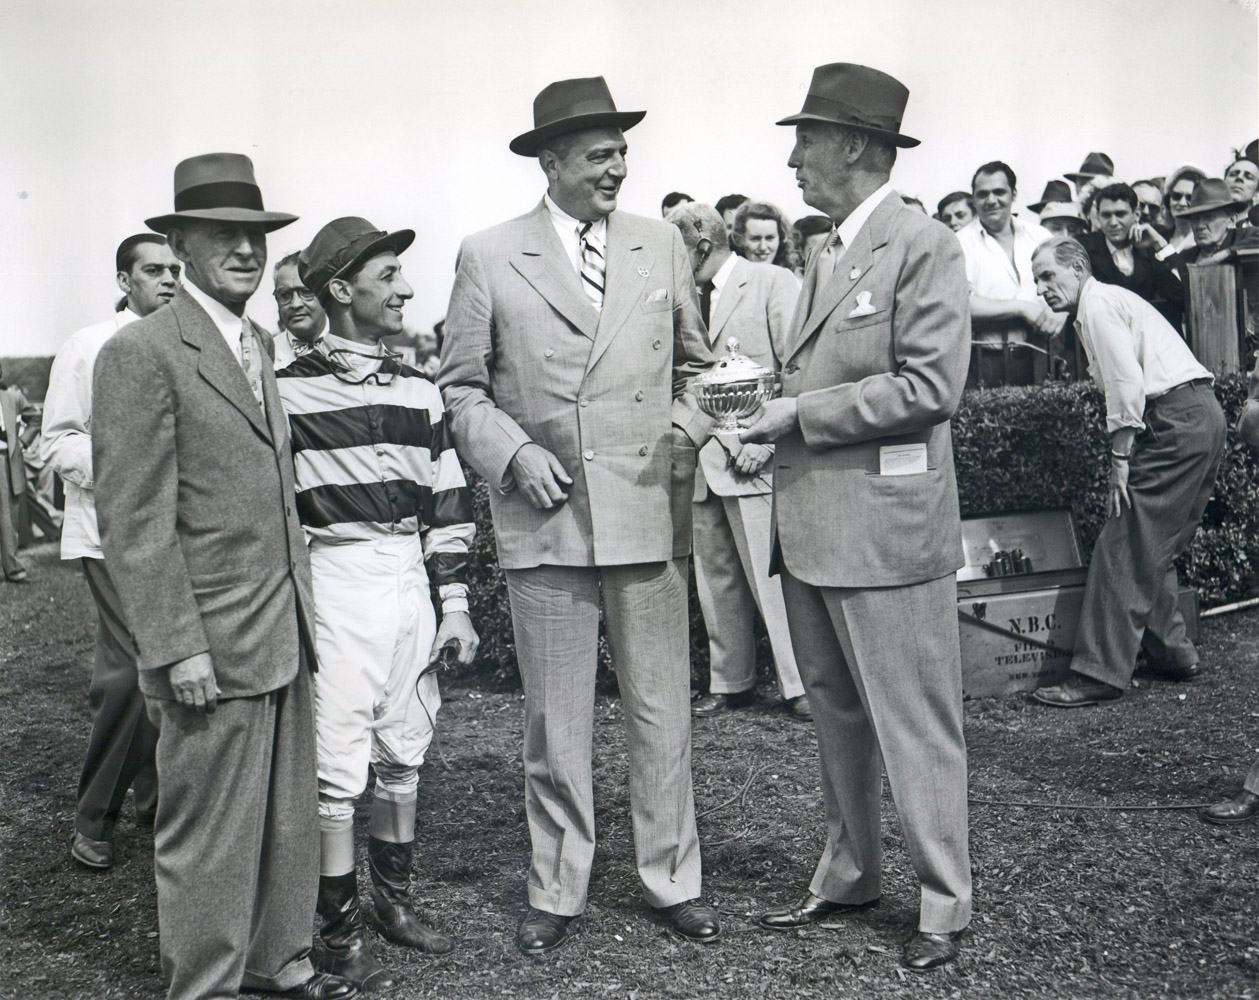 Trainer Bert Mulholland, jockey Eddie Arcaro, and owner George D. Widener, Jr. accept the trophy for the 1951 Withers Stakes at Belmont Park, won by Battlefield (Keeneland Library Morgan Collection/Museum Collection)